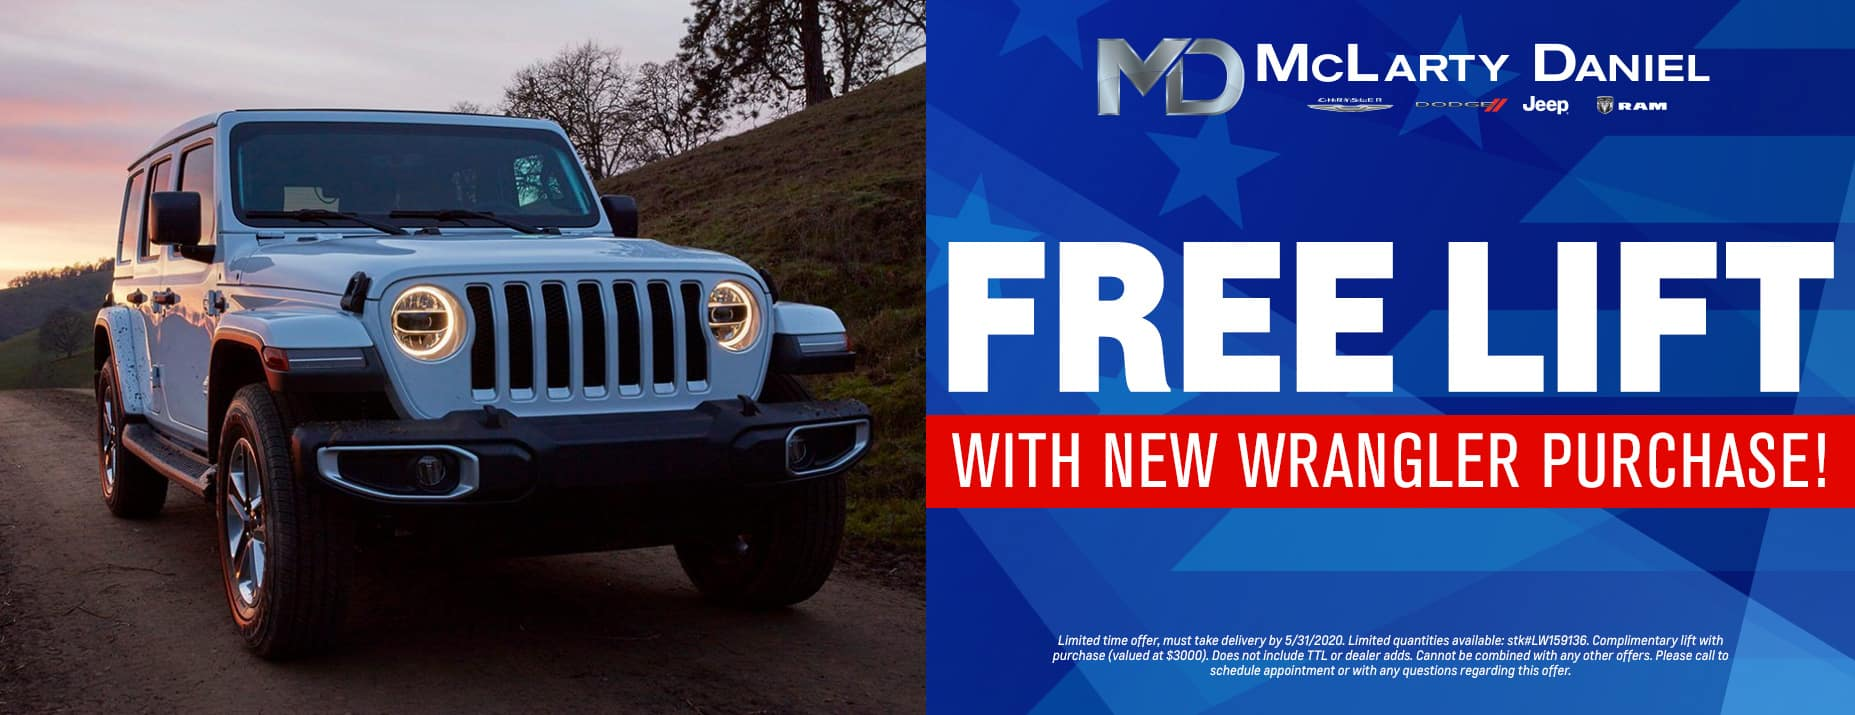 Free lift with new Wrangler purchase!